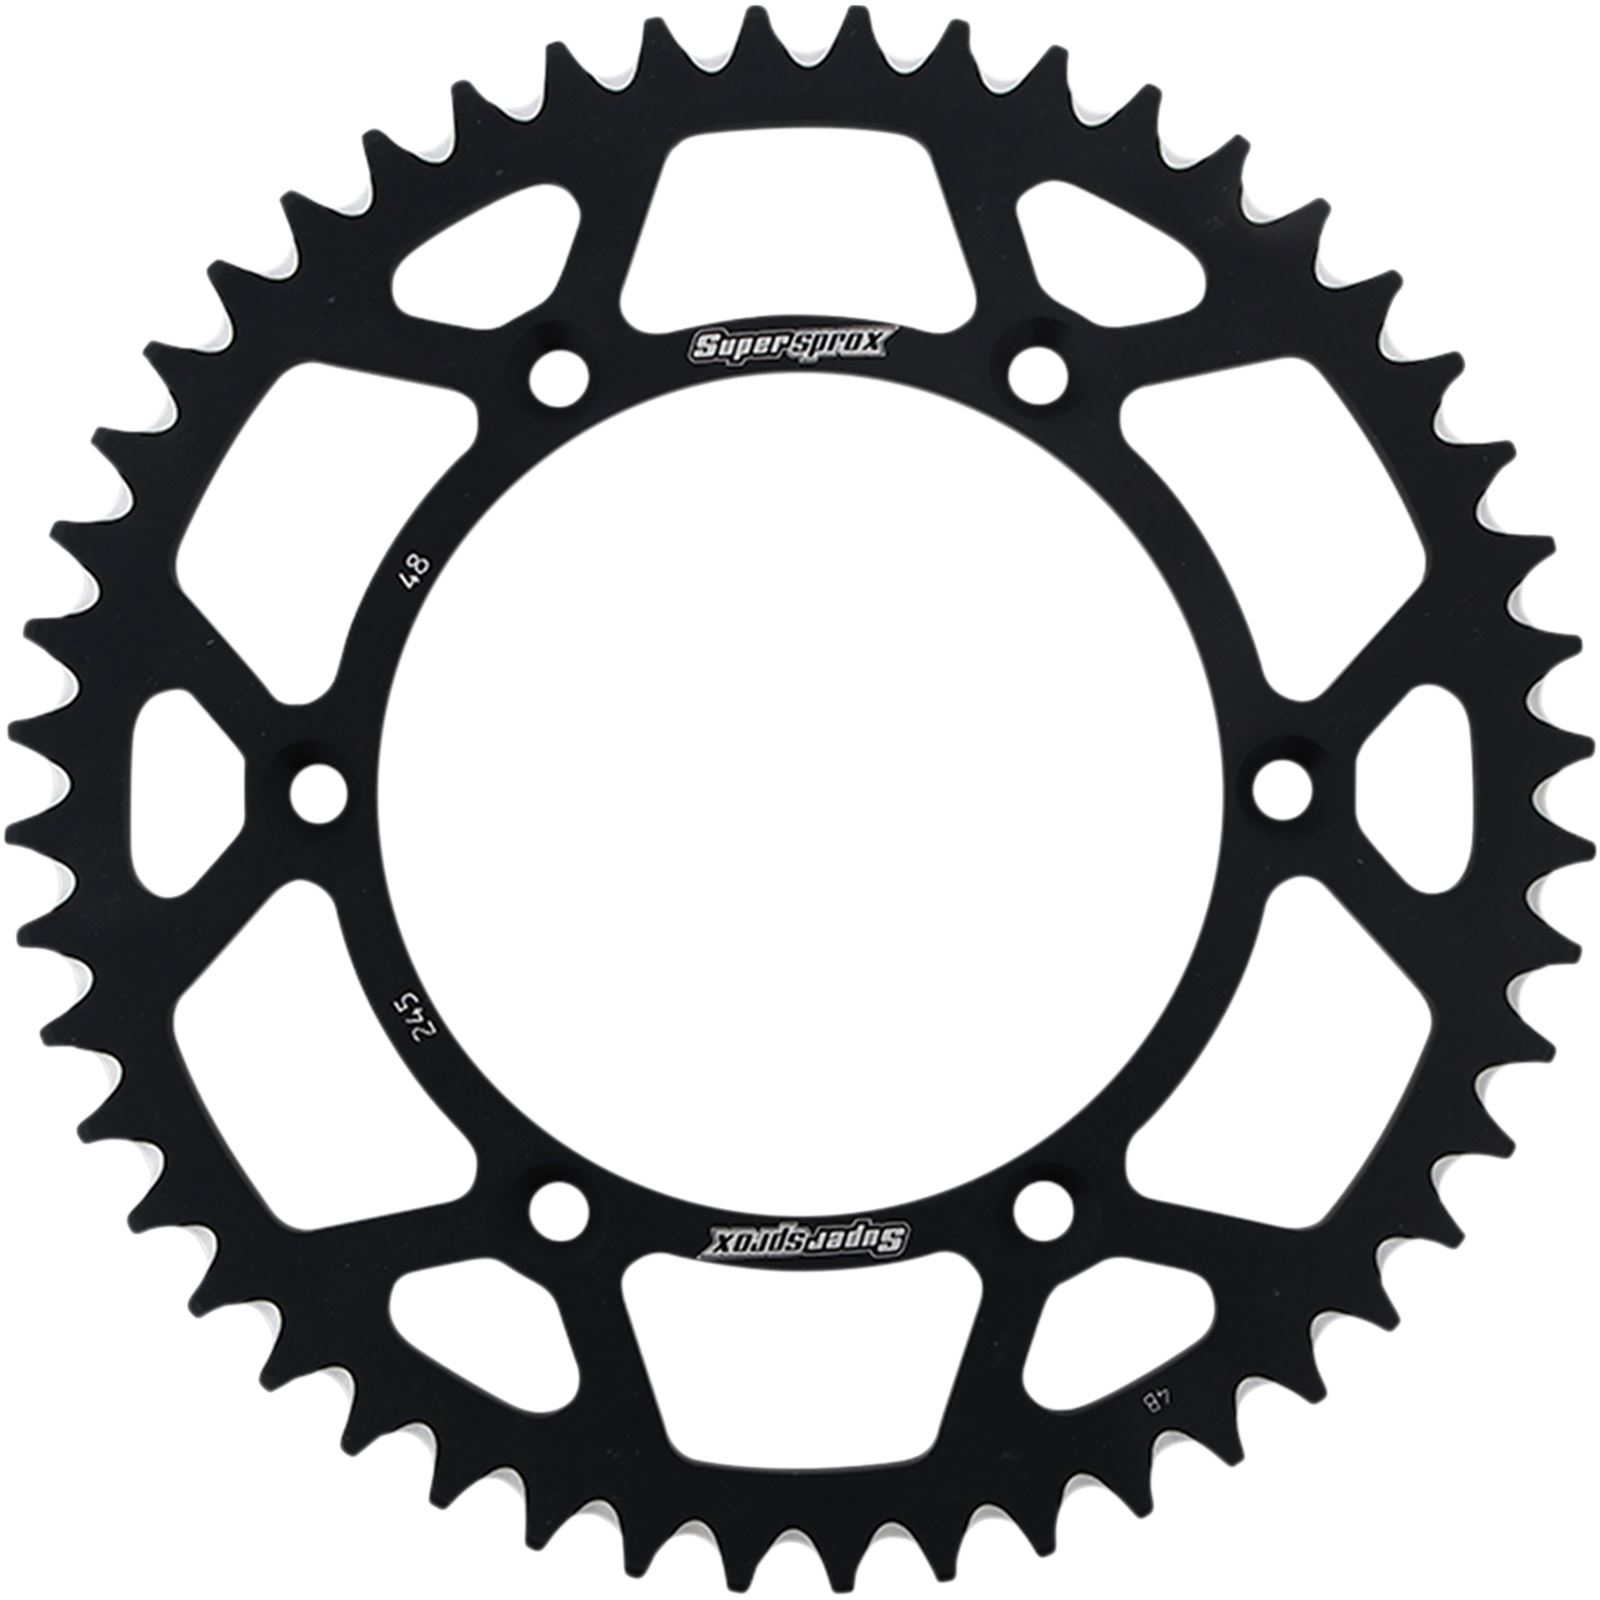 Supersprox Rear Sprocket - Black for Yamaha - 48-Tooth